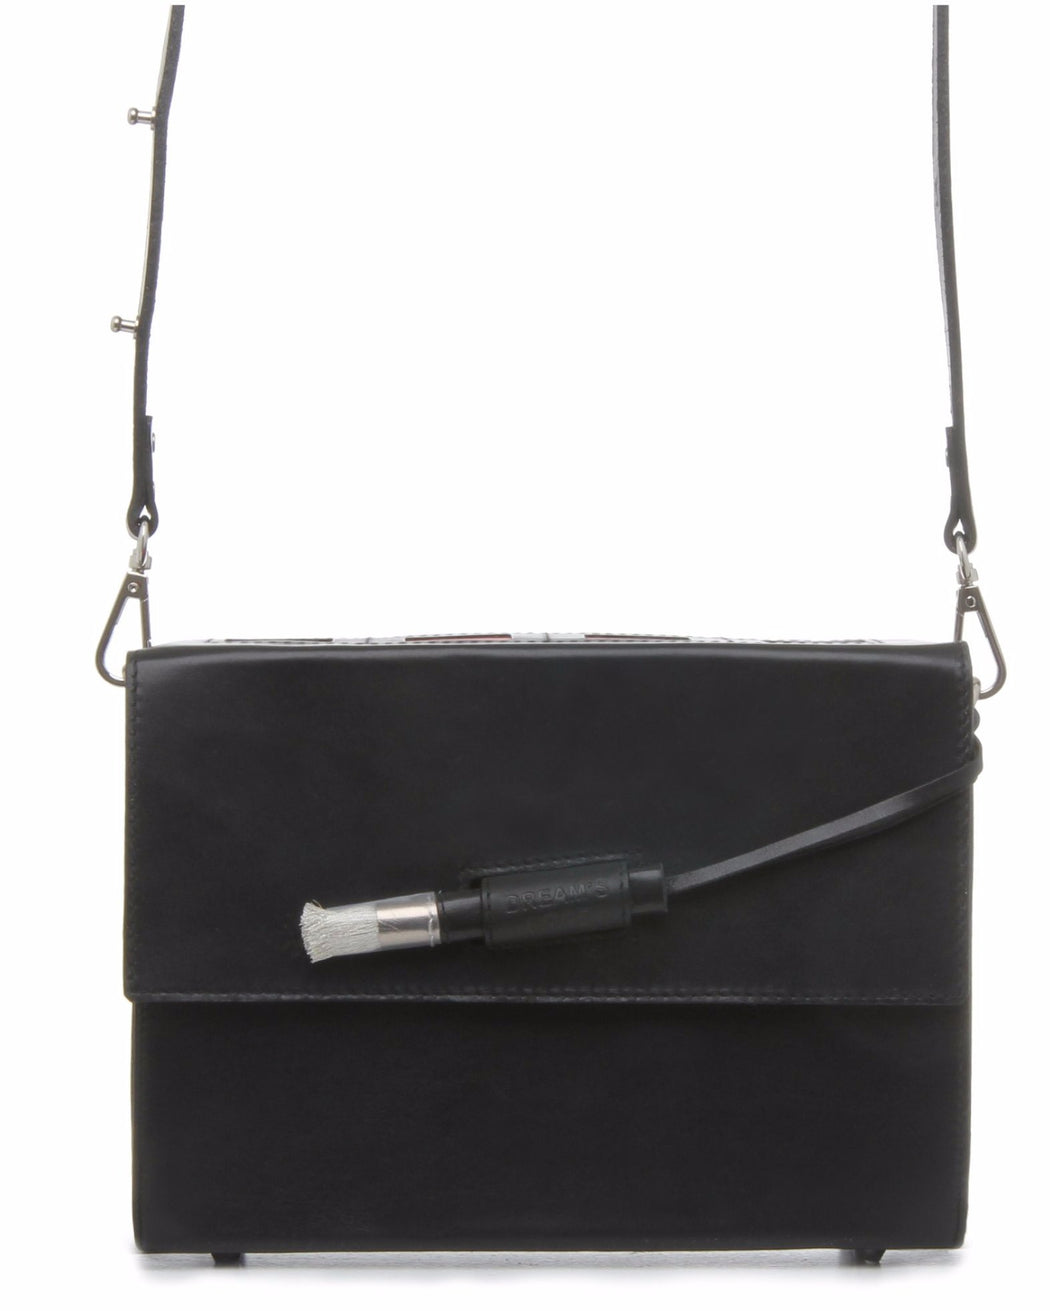 EYE-SHADOW B shoulder bag